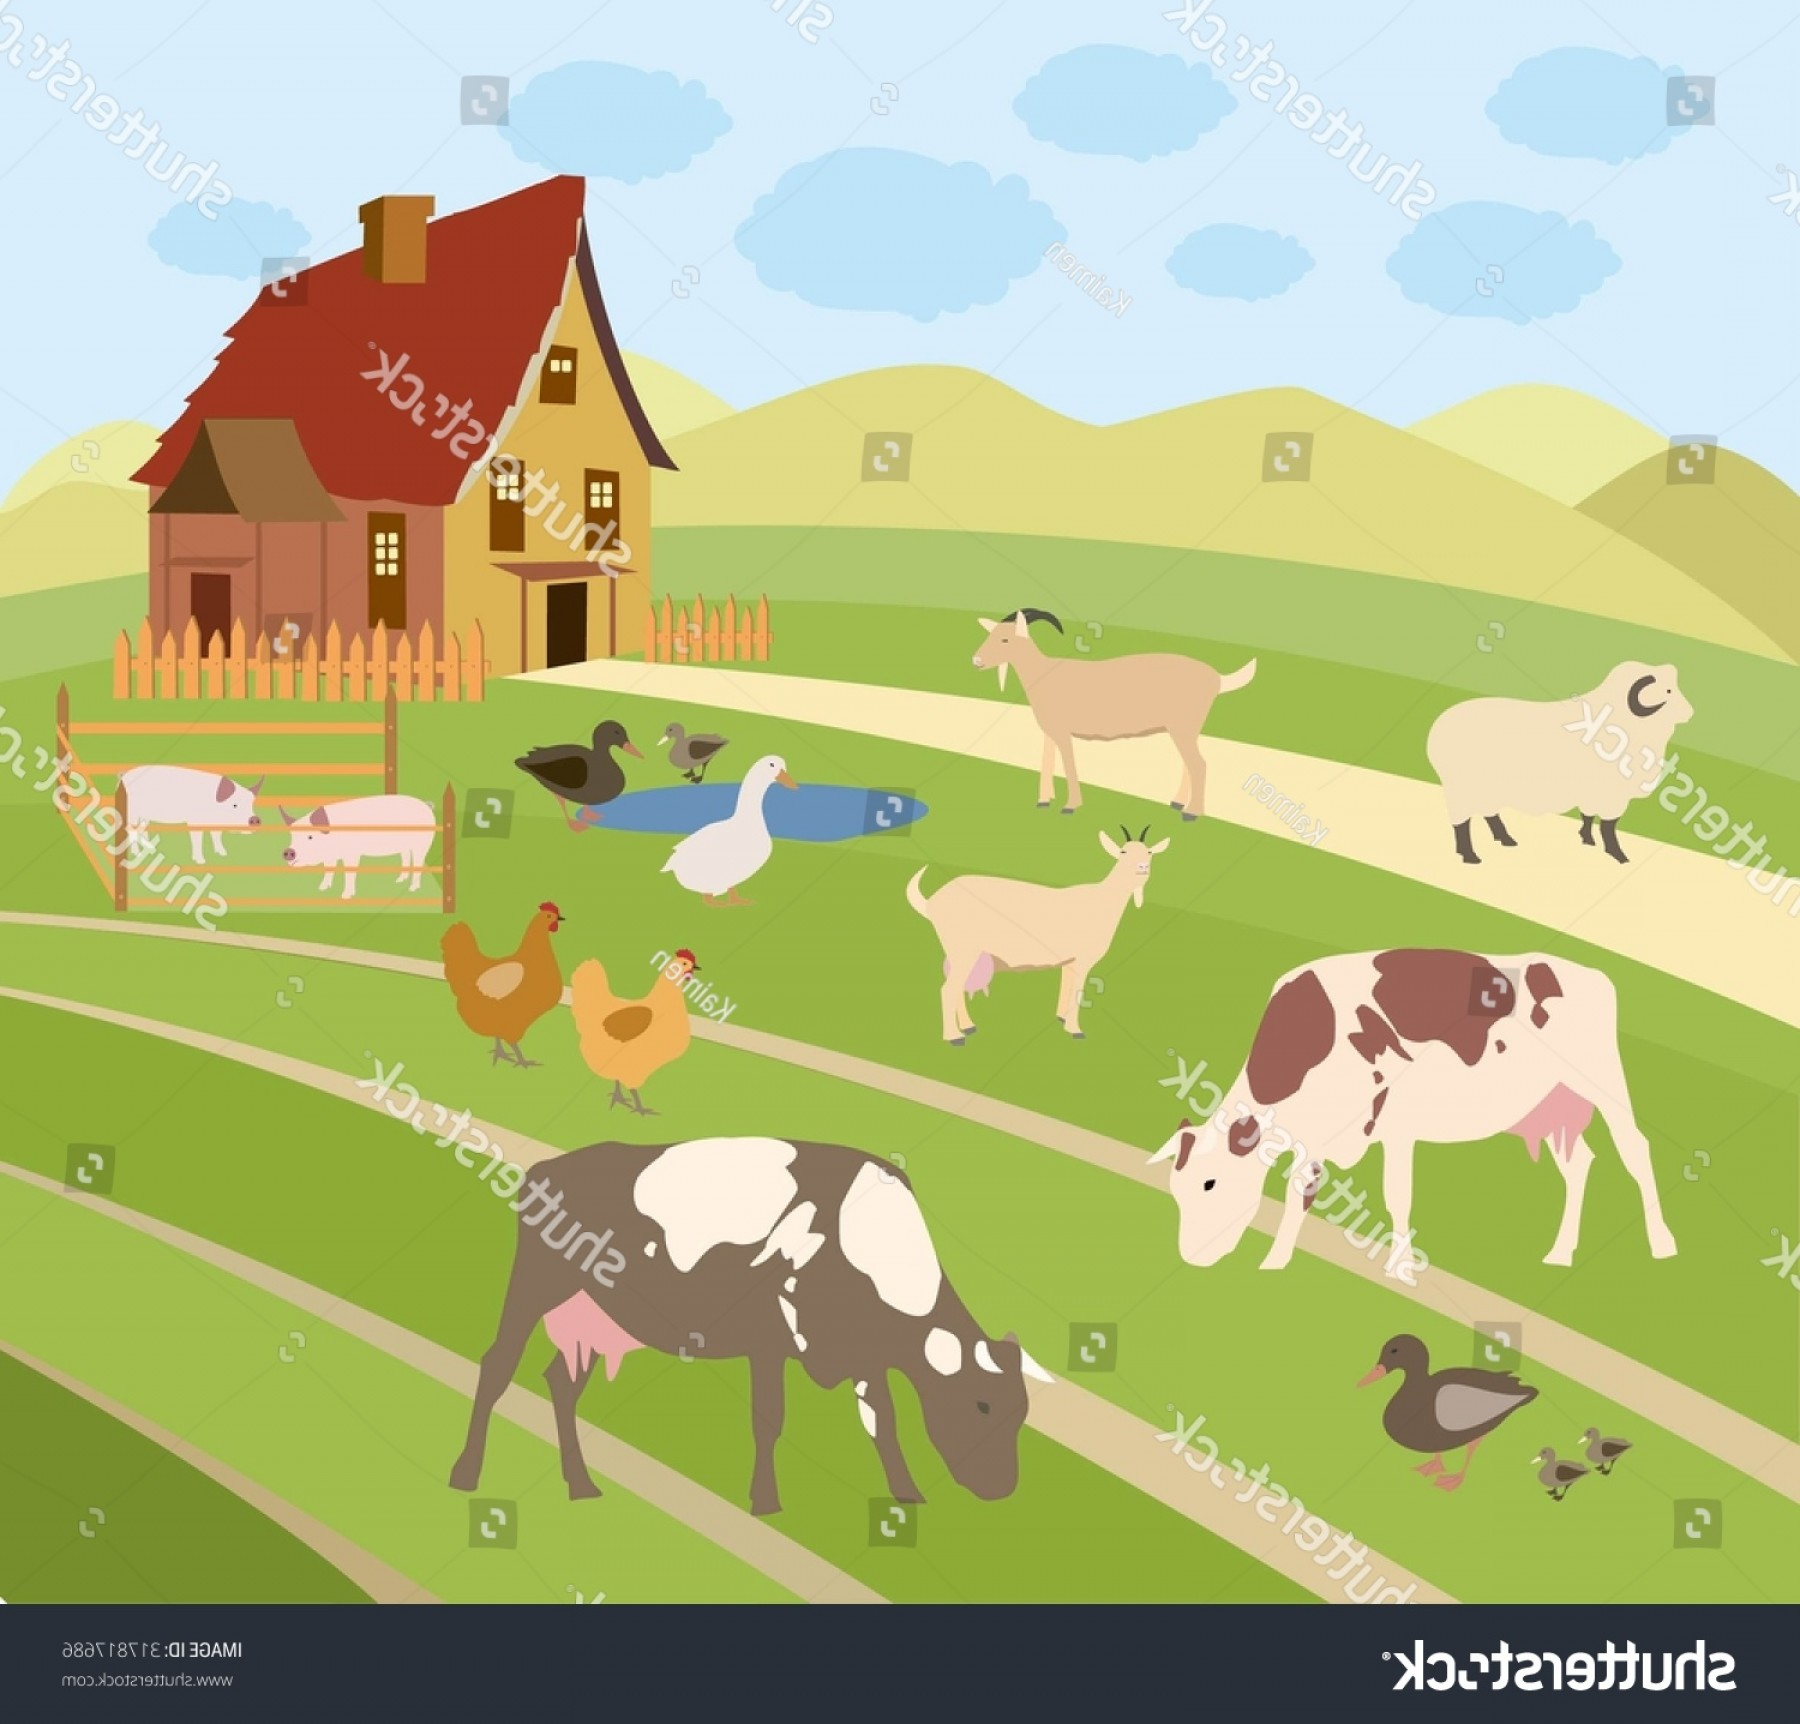 Farm Vector Illustration: Vector Illustration Farm Animals Rural Scene